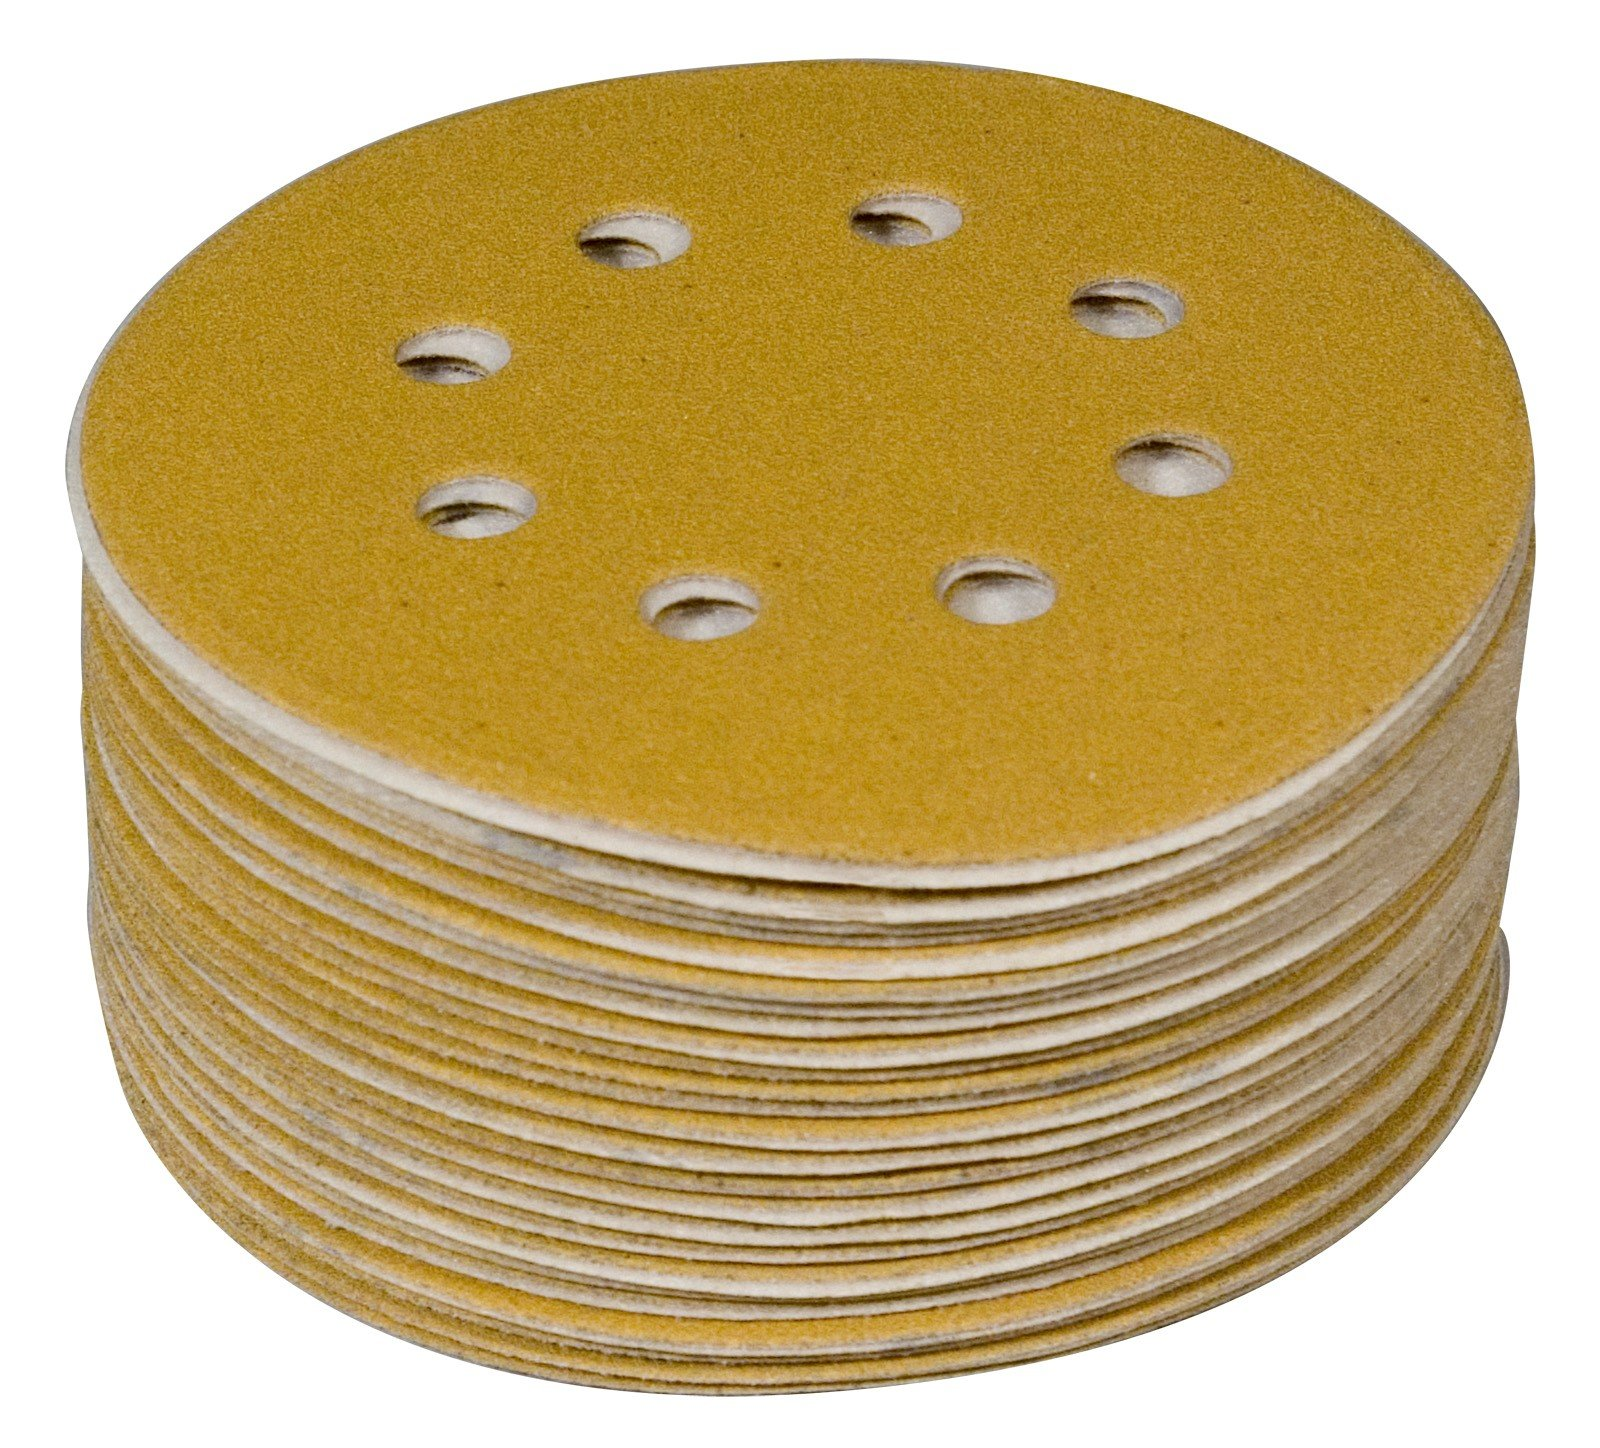 POWERTEC 44022G-50 5'' 8 Hole 220 Grit Hook and Loop Sanding Discs - Gold (50 Pack)